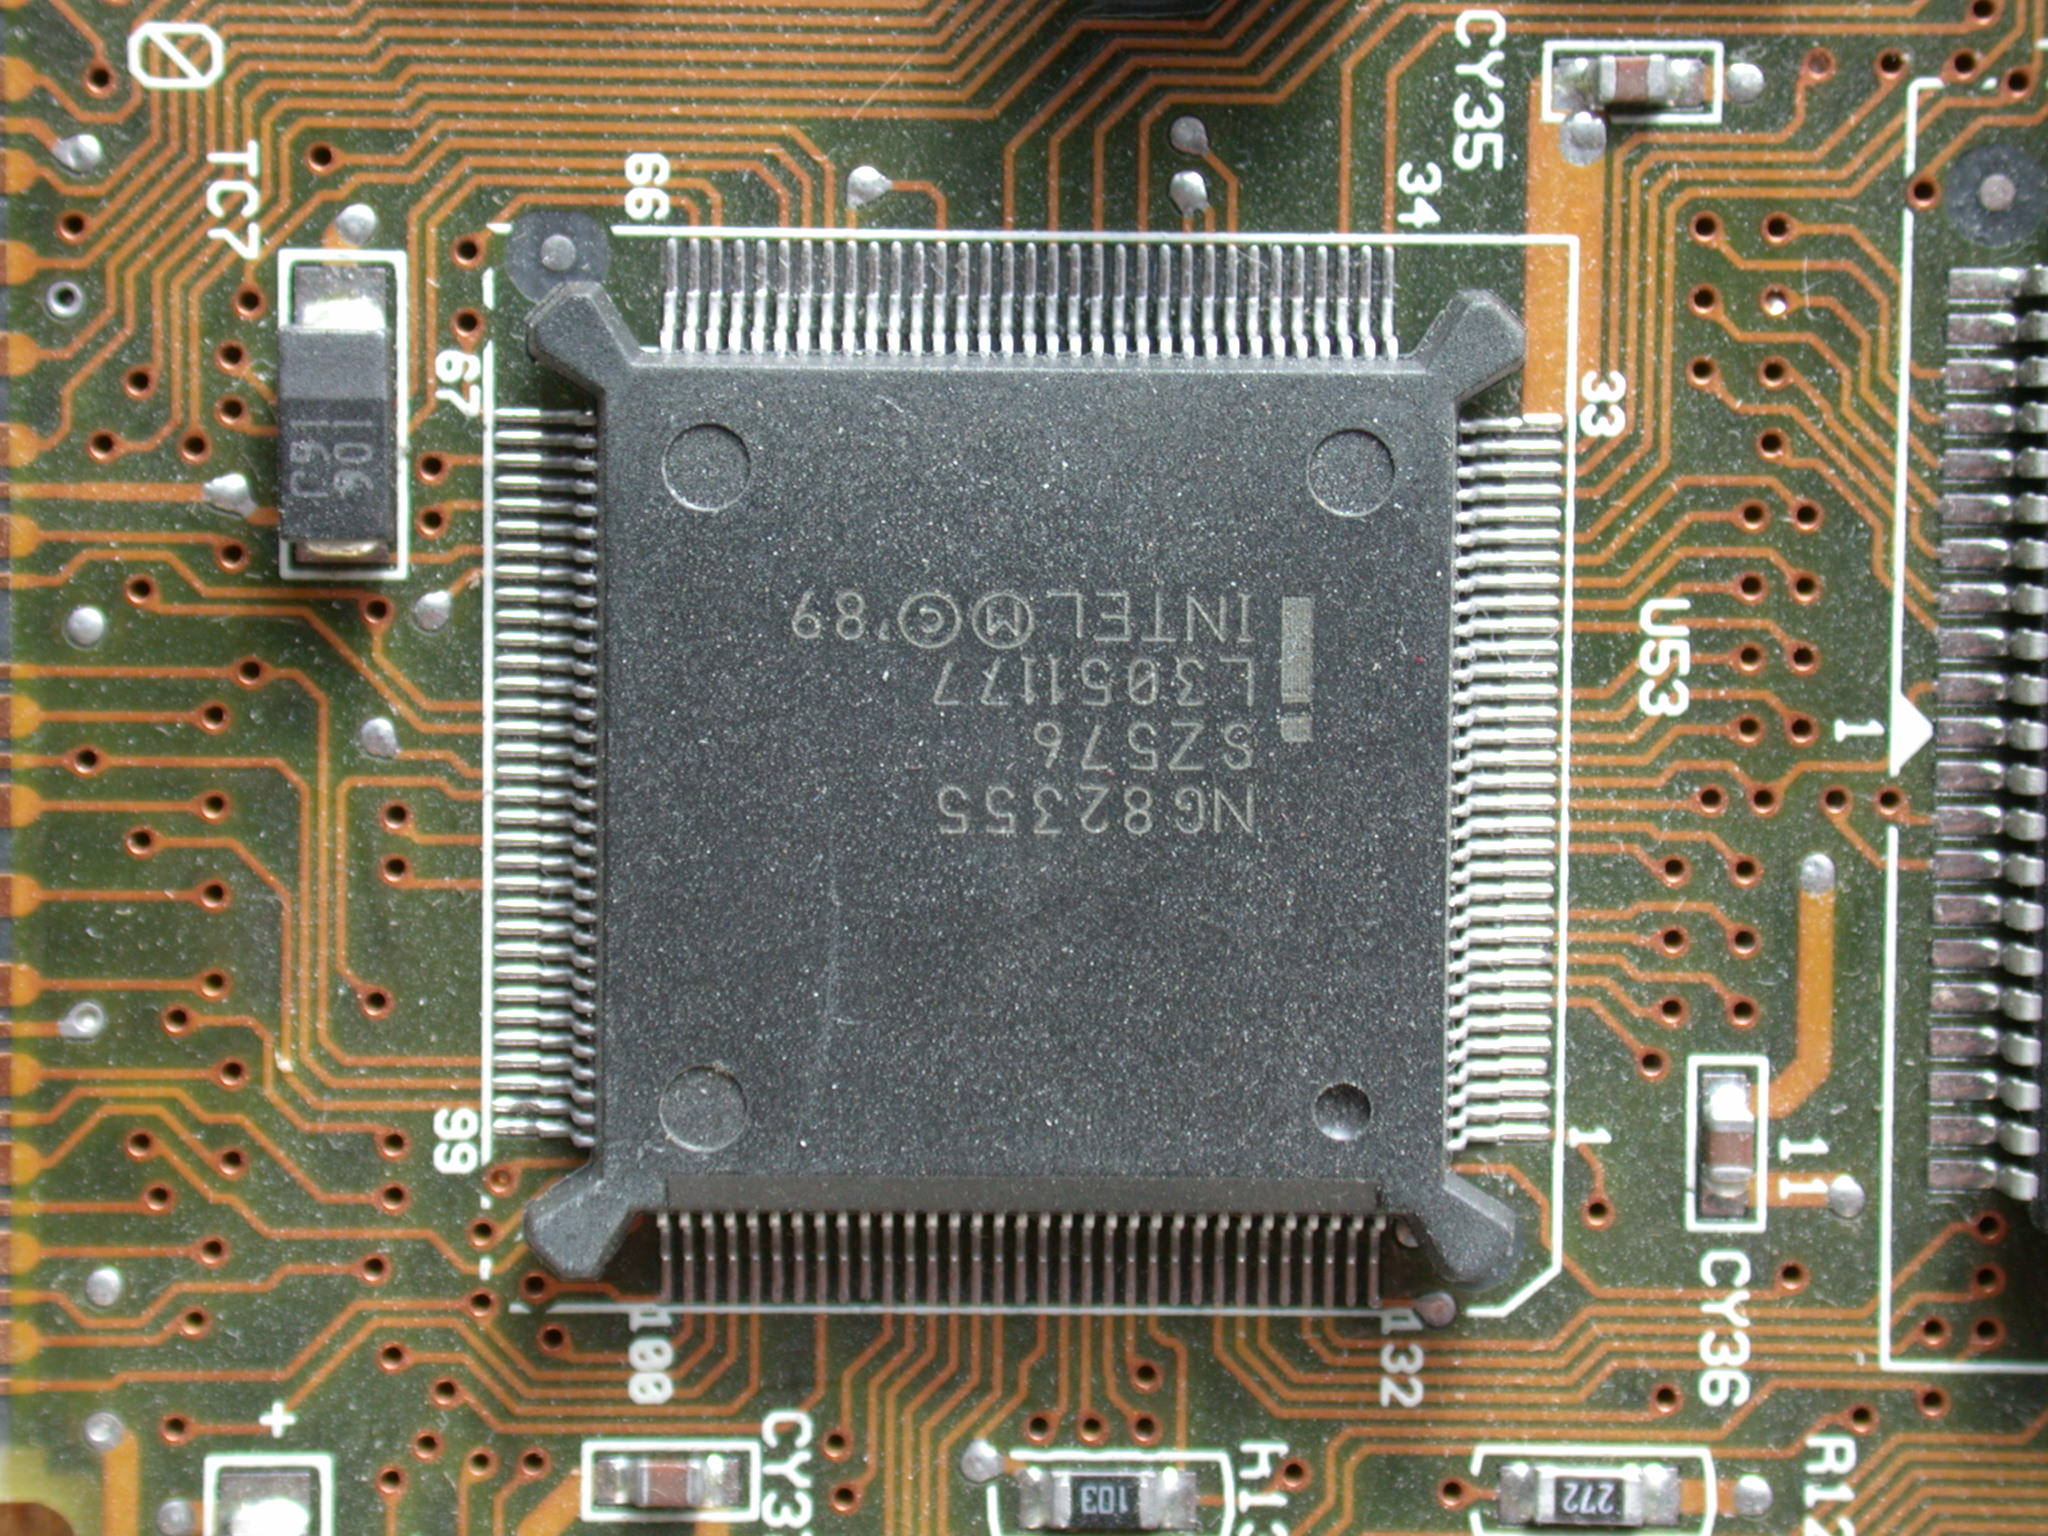 objects circuits chip computer printboard processor plastic numbes 0 digital silicon